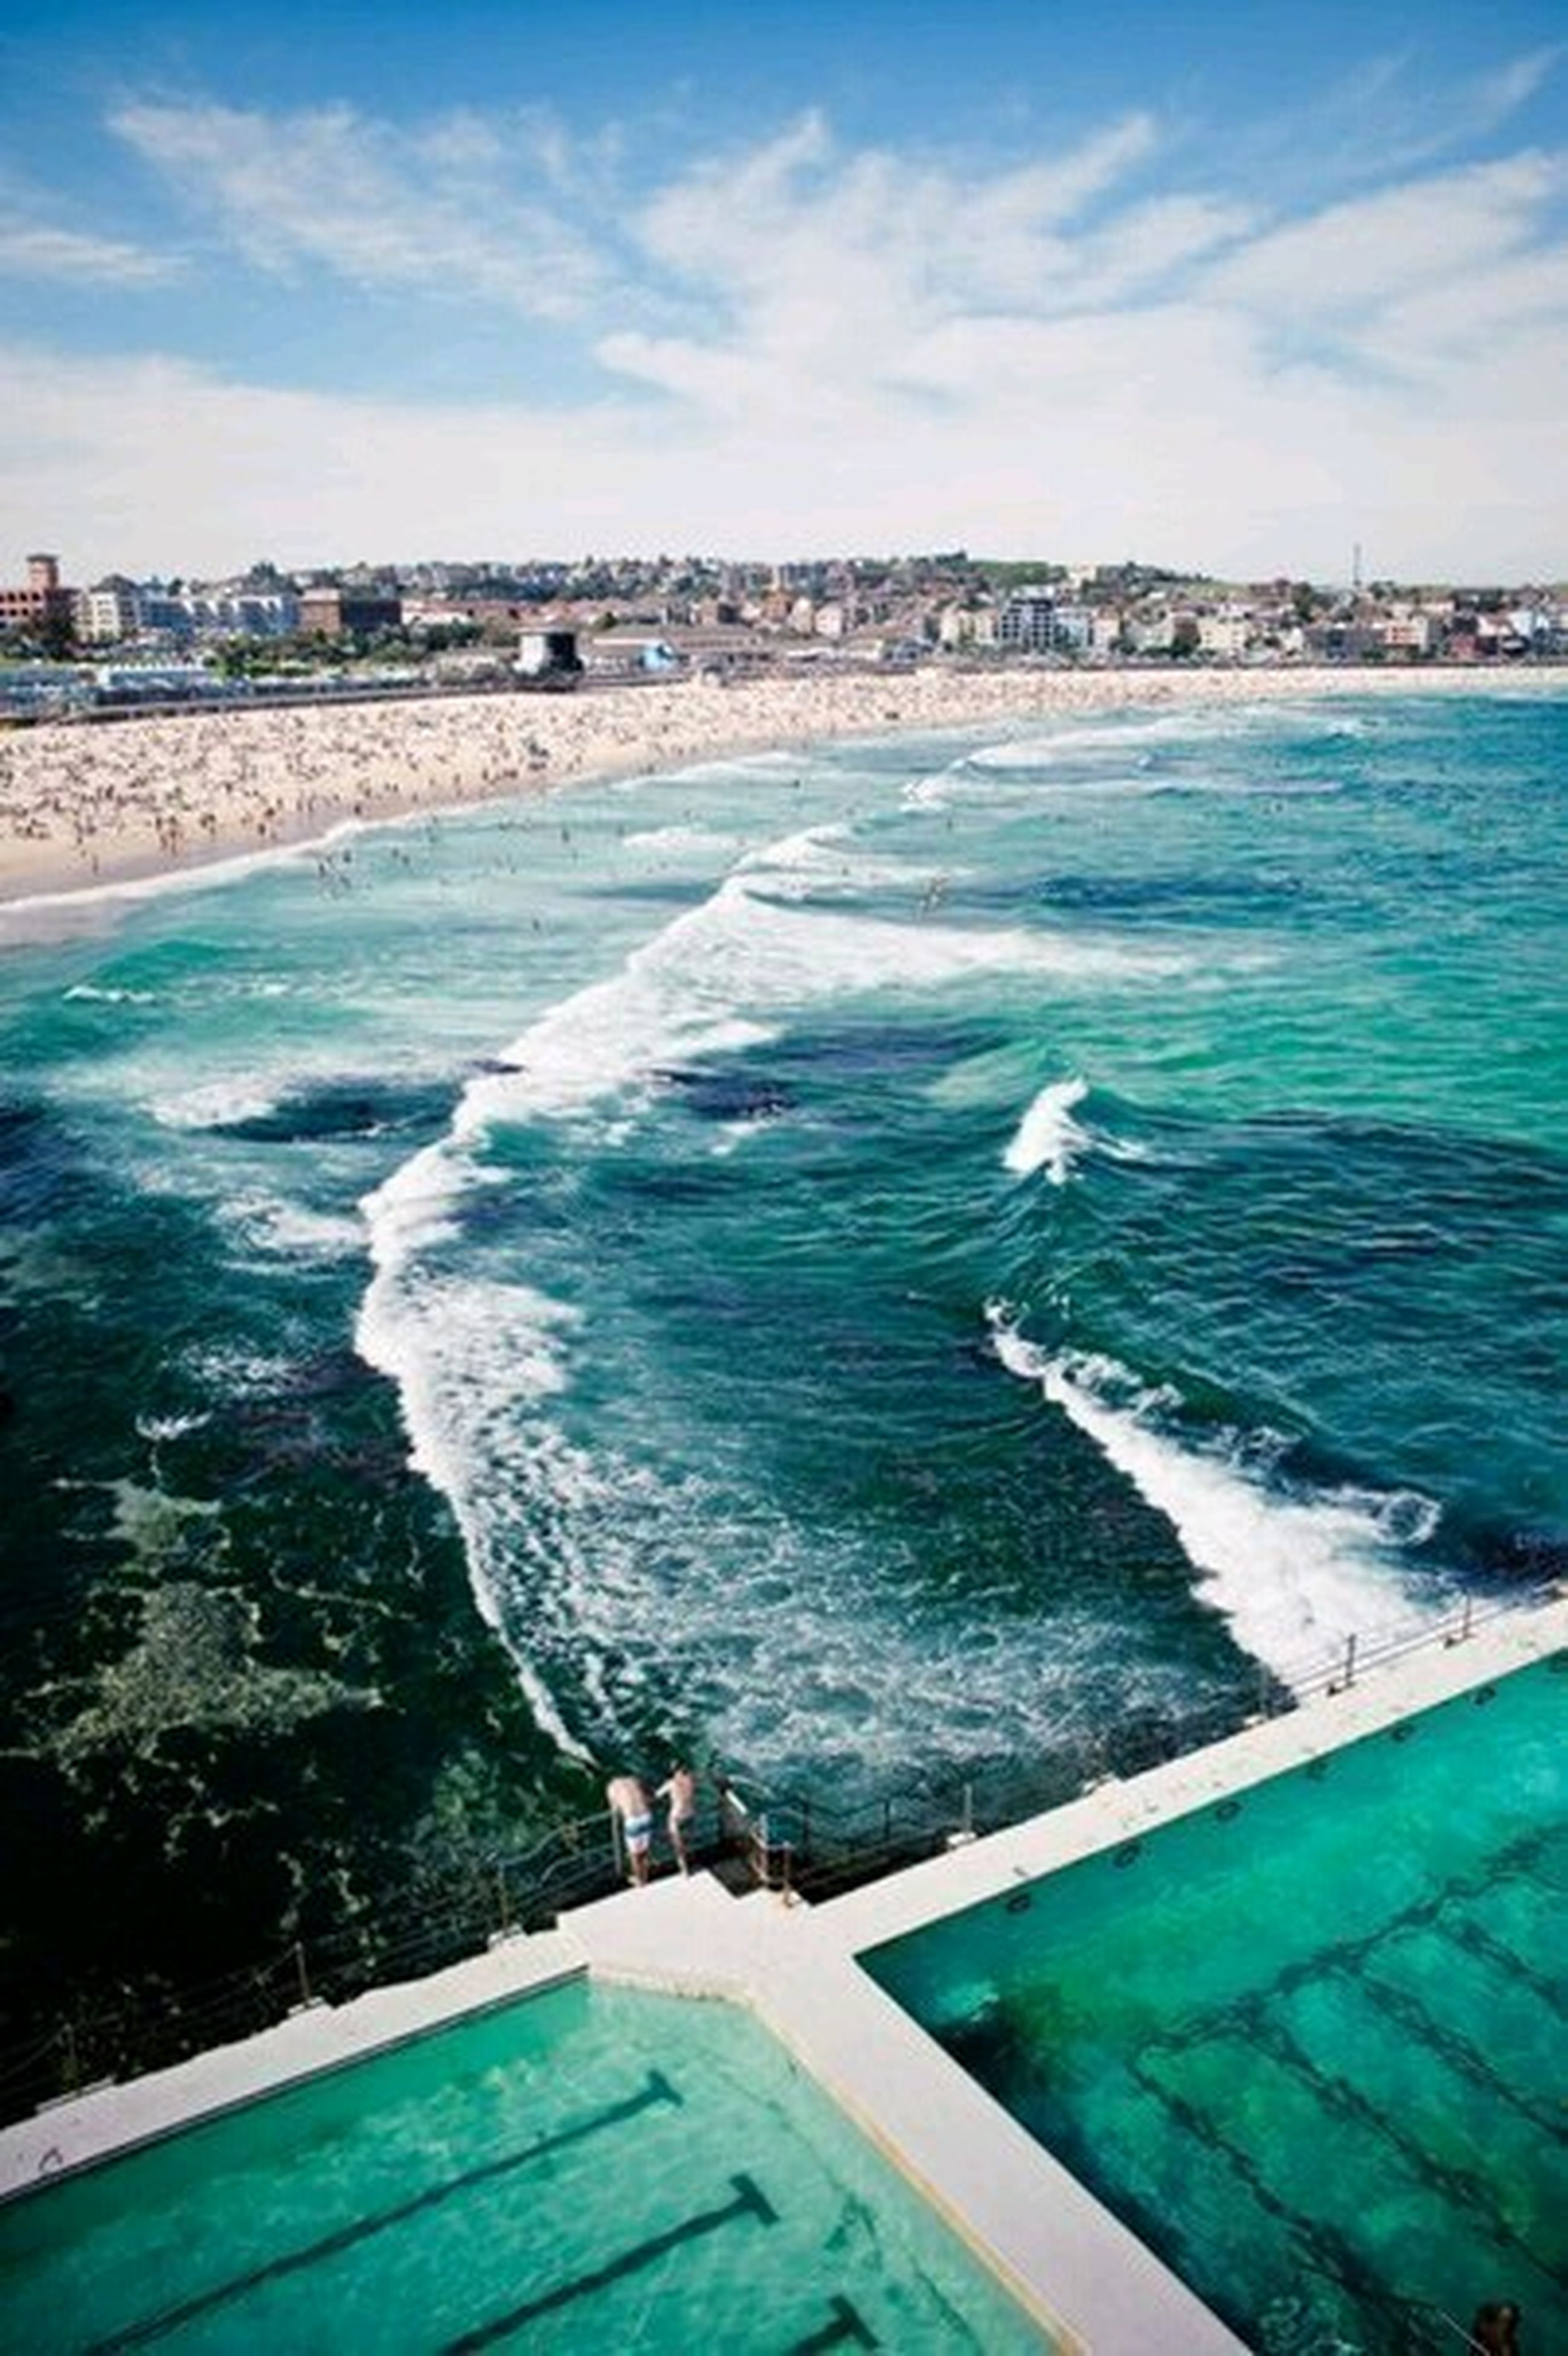 water, sea, blue, building exterior, built structure, architecture, sky, wave, surf, beach, city, swimming pool, shore, turquoise colored, horizon over water, coastline, high angle view, cloud - sky, nature, scenics